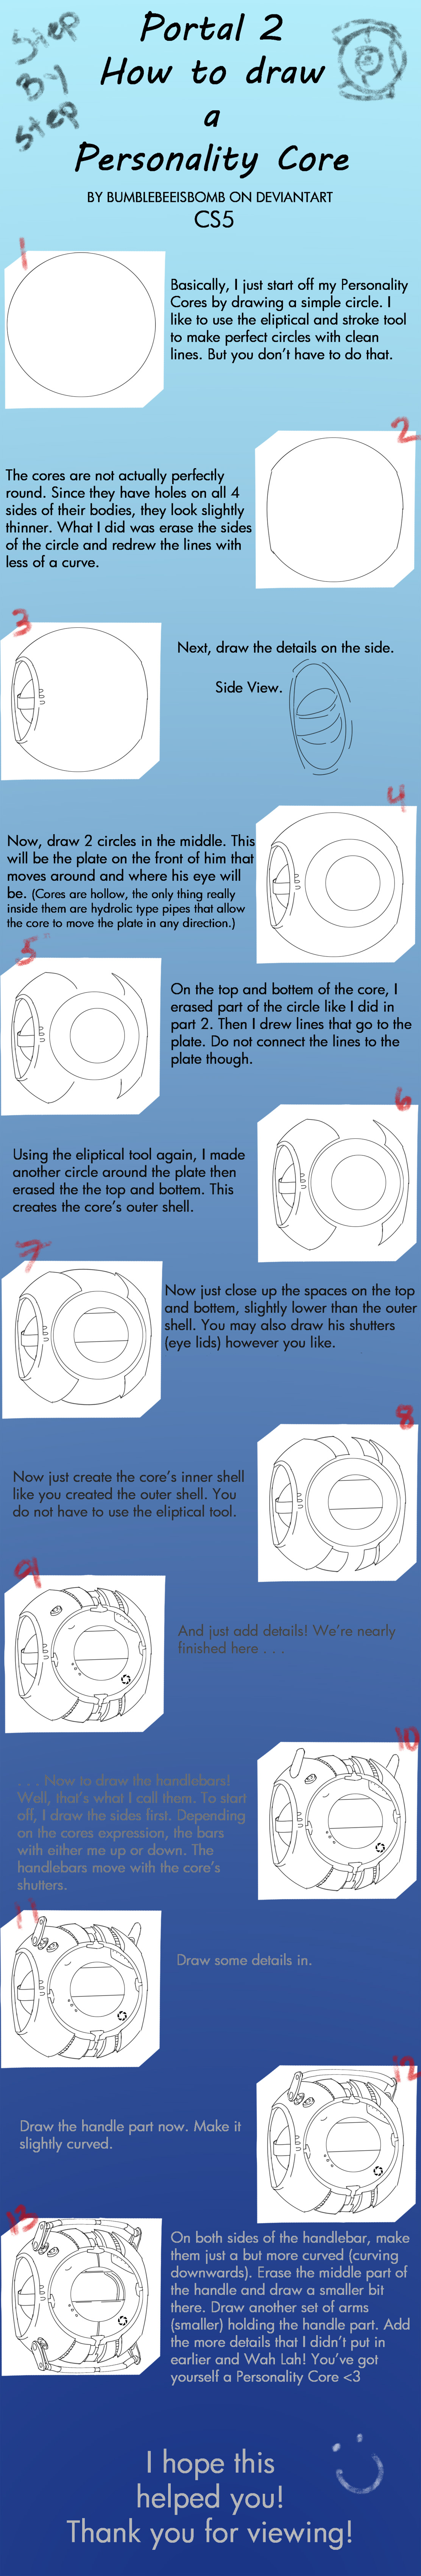 Portal 2 - Core Tutorial by DeviantDolphinART